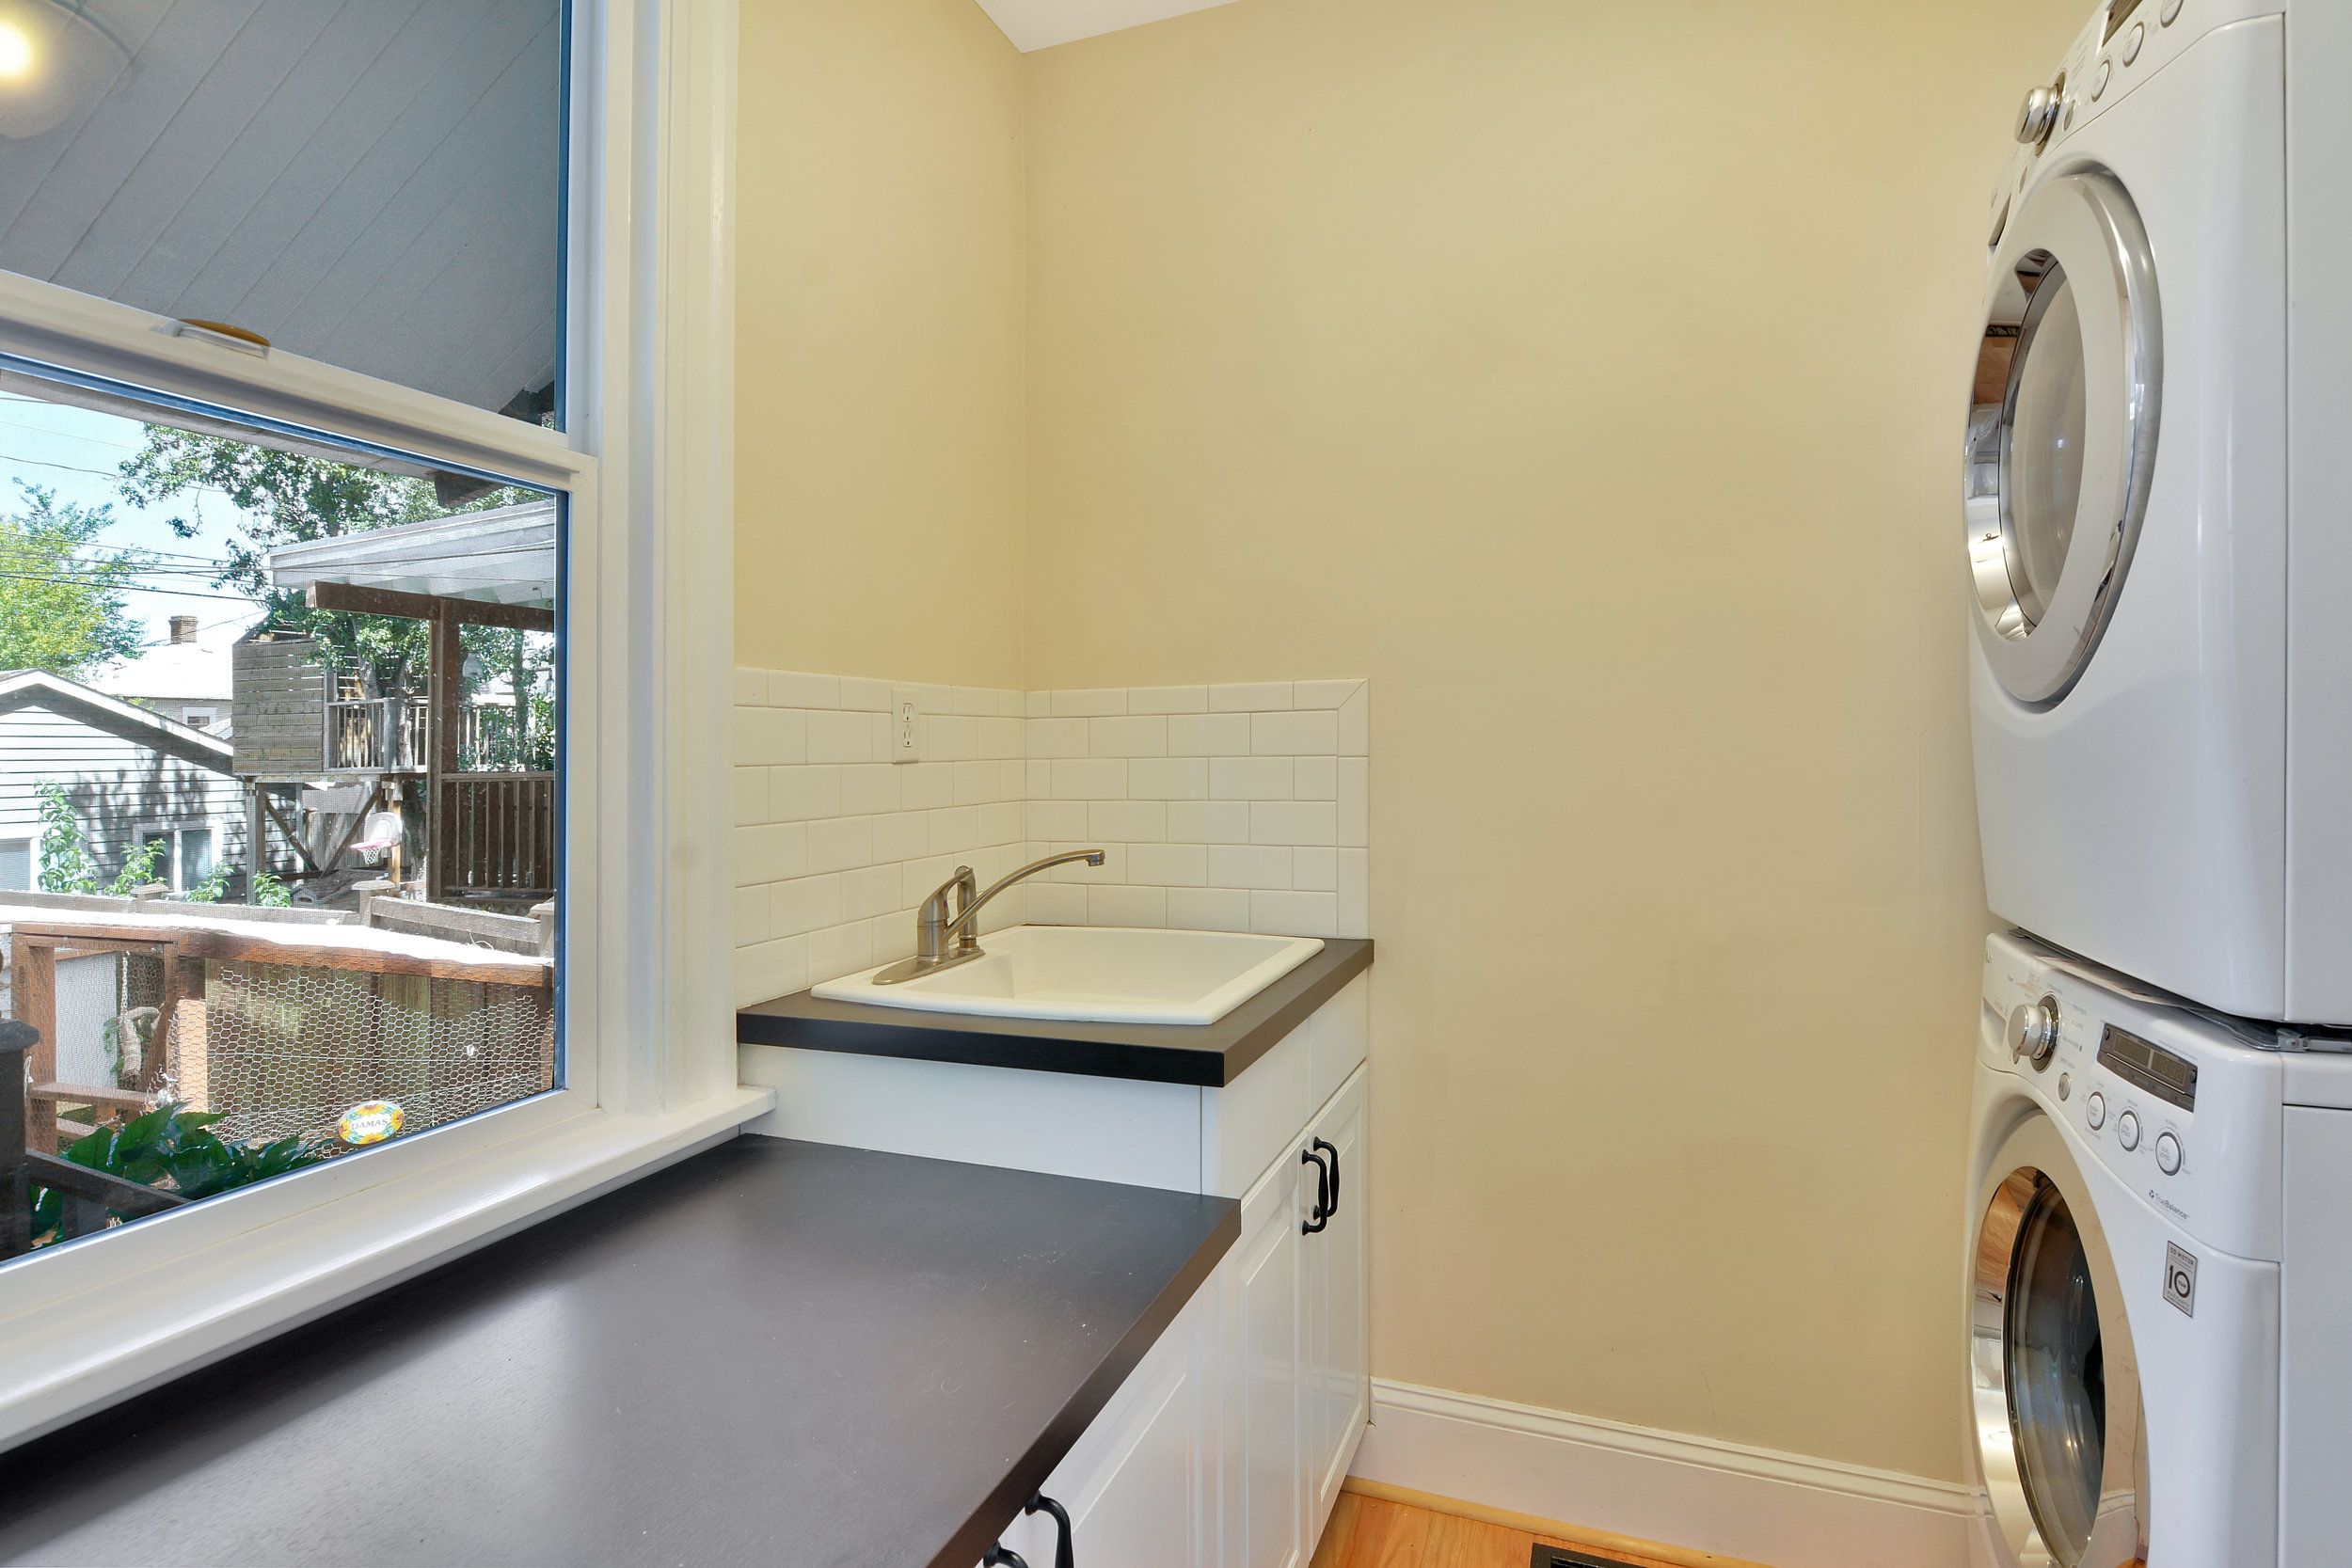 The laundry room includes a sink, clothes folding counter space, and a view to the back yard.